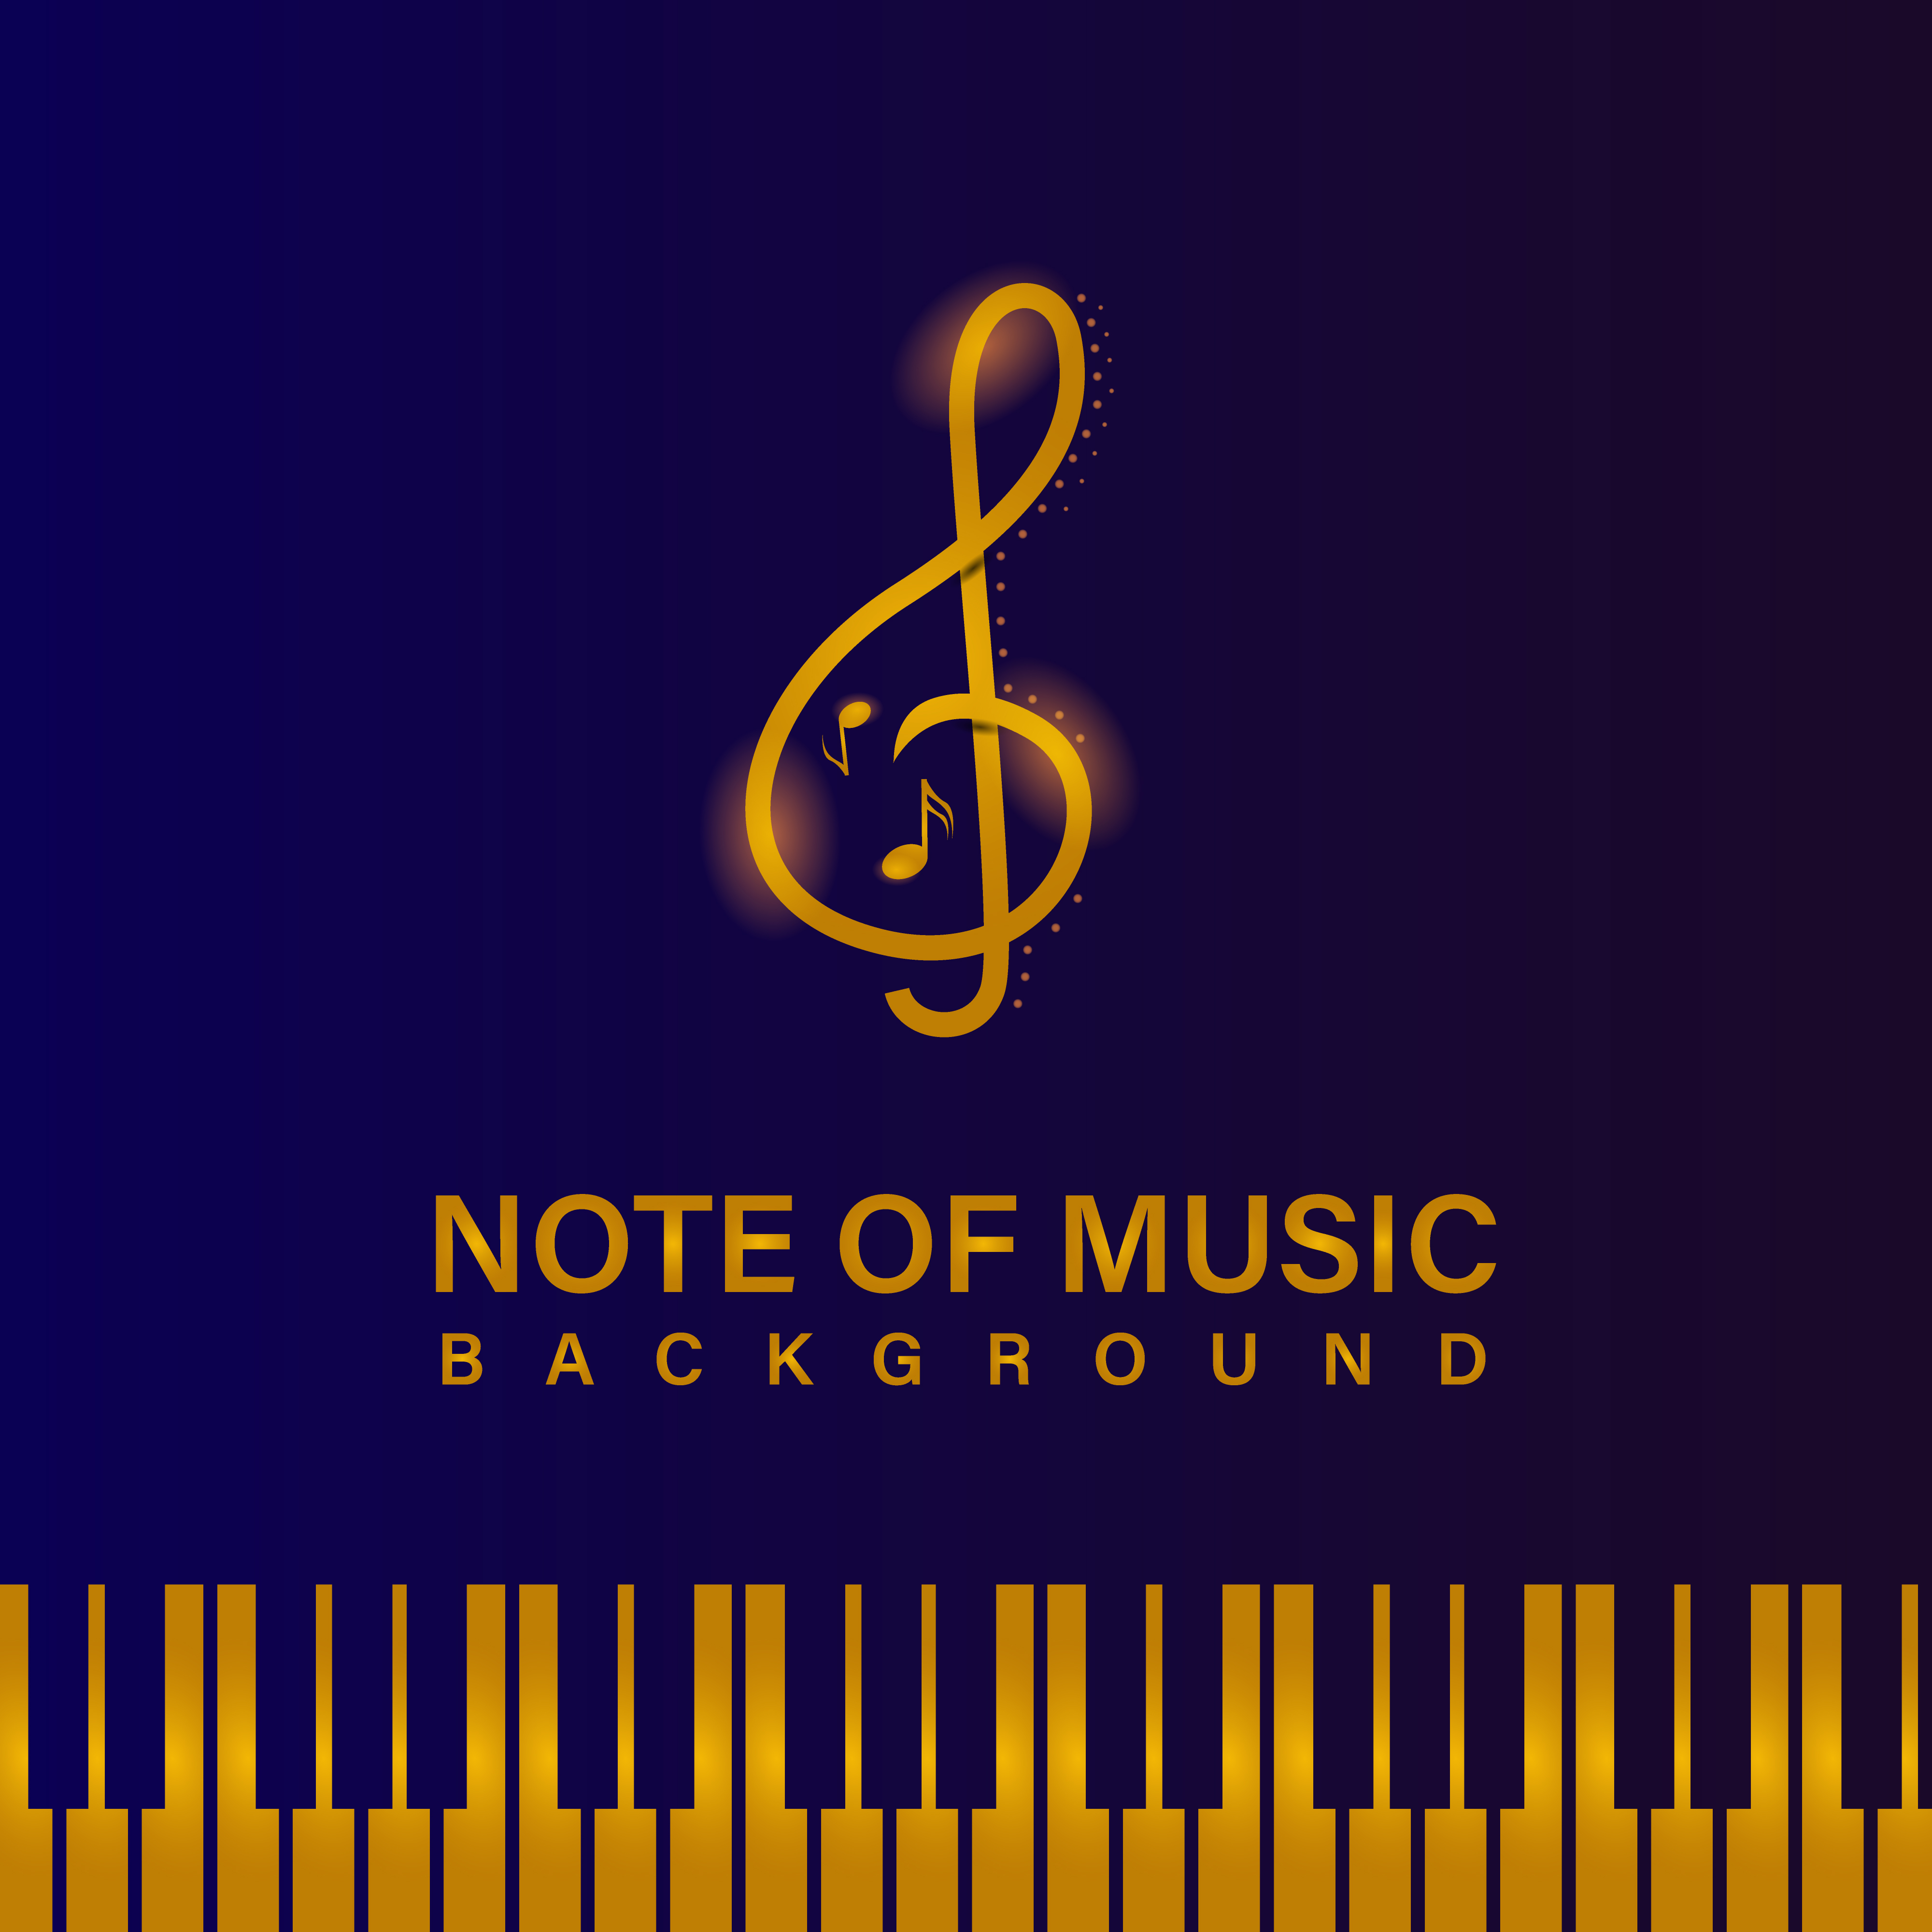 Glowing Golden Music Banner And Background Template 1237687 Vector Art At  Vecteezy